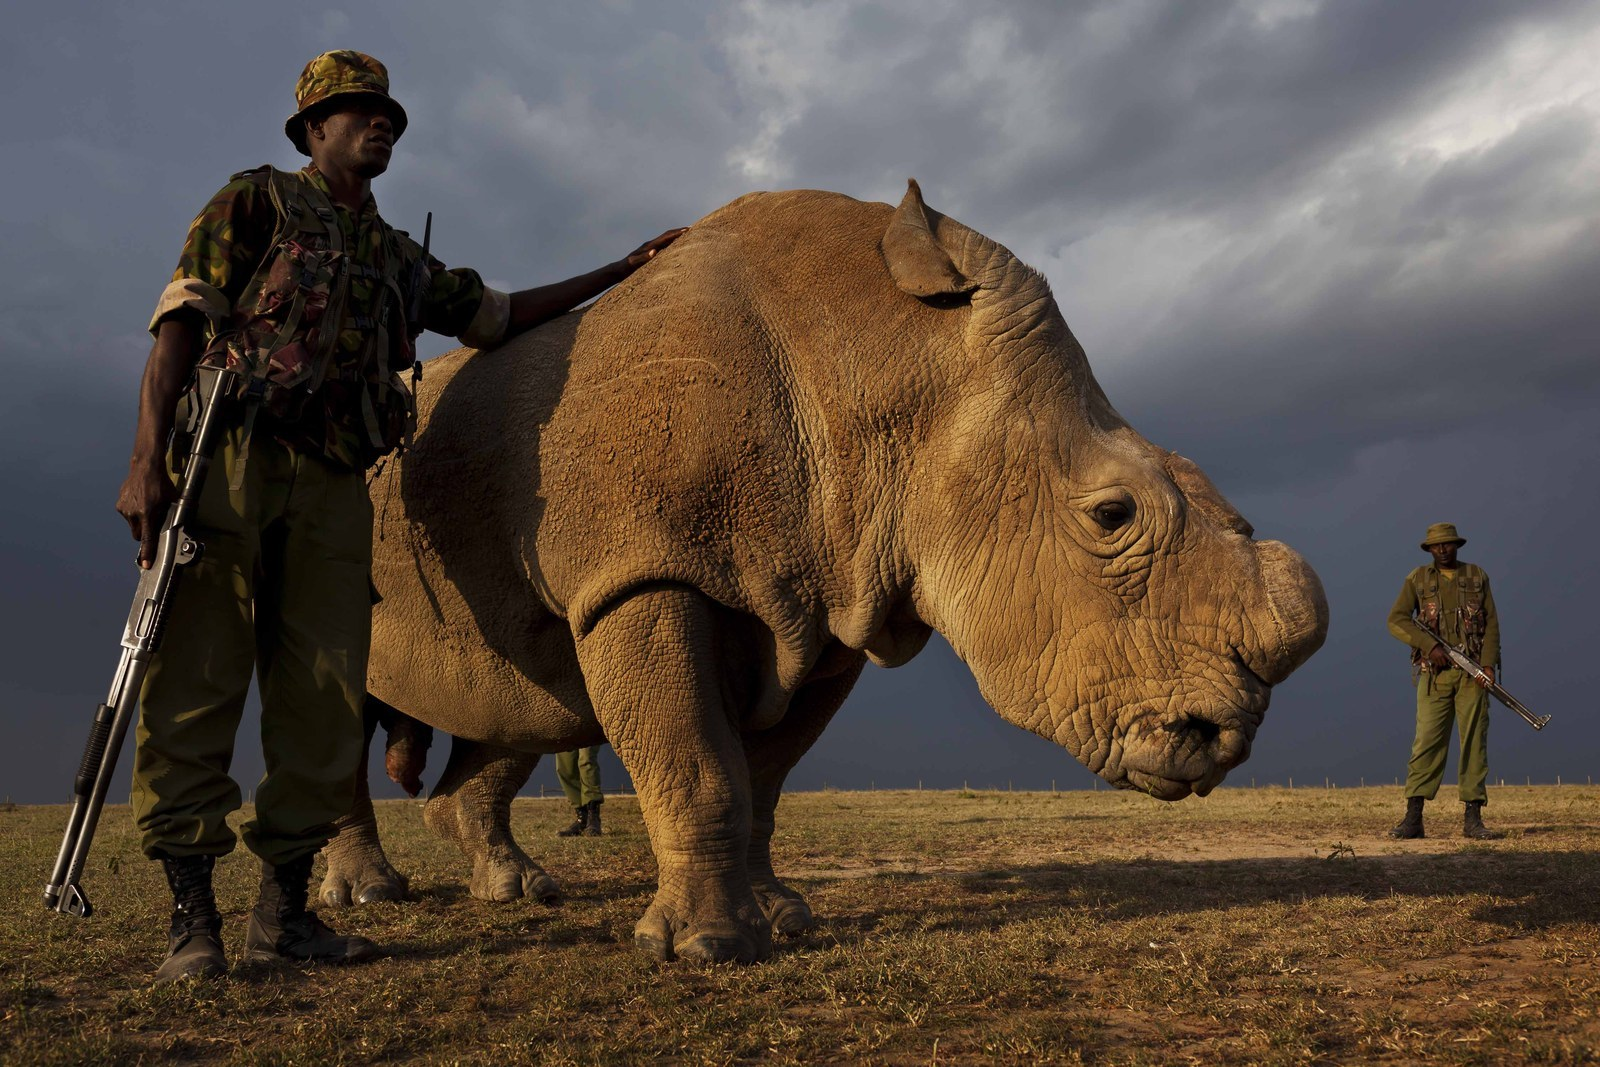 This Is The Last Remaining Male Northern White Rhino In The World - BuzzFeed News